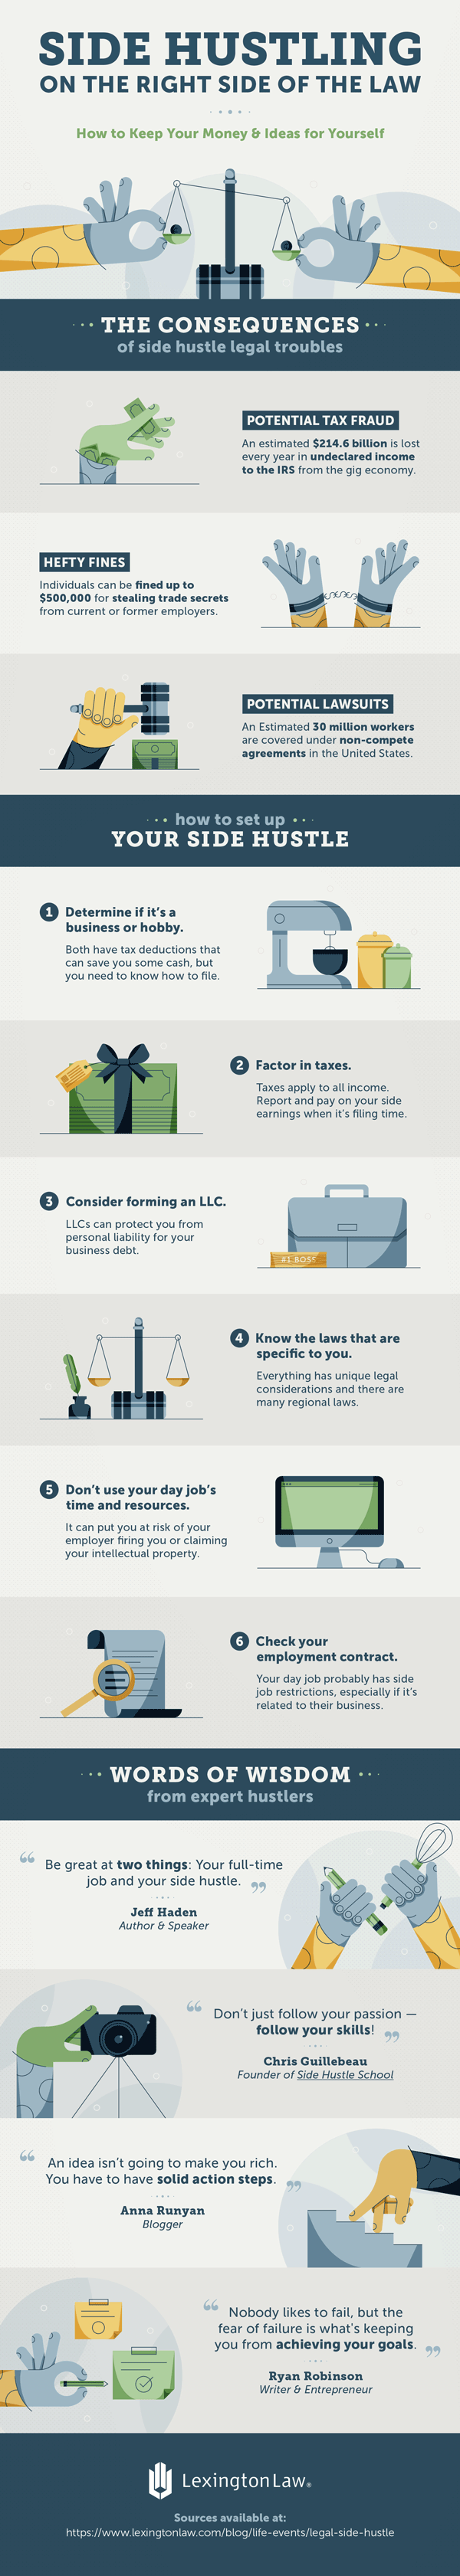 Legal and tax issues you need to know for your side hustle